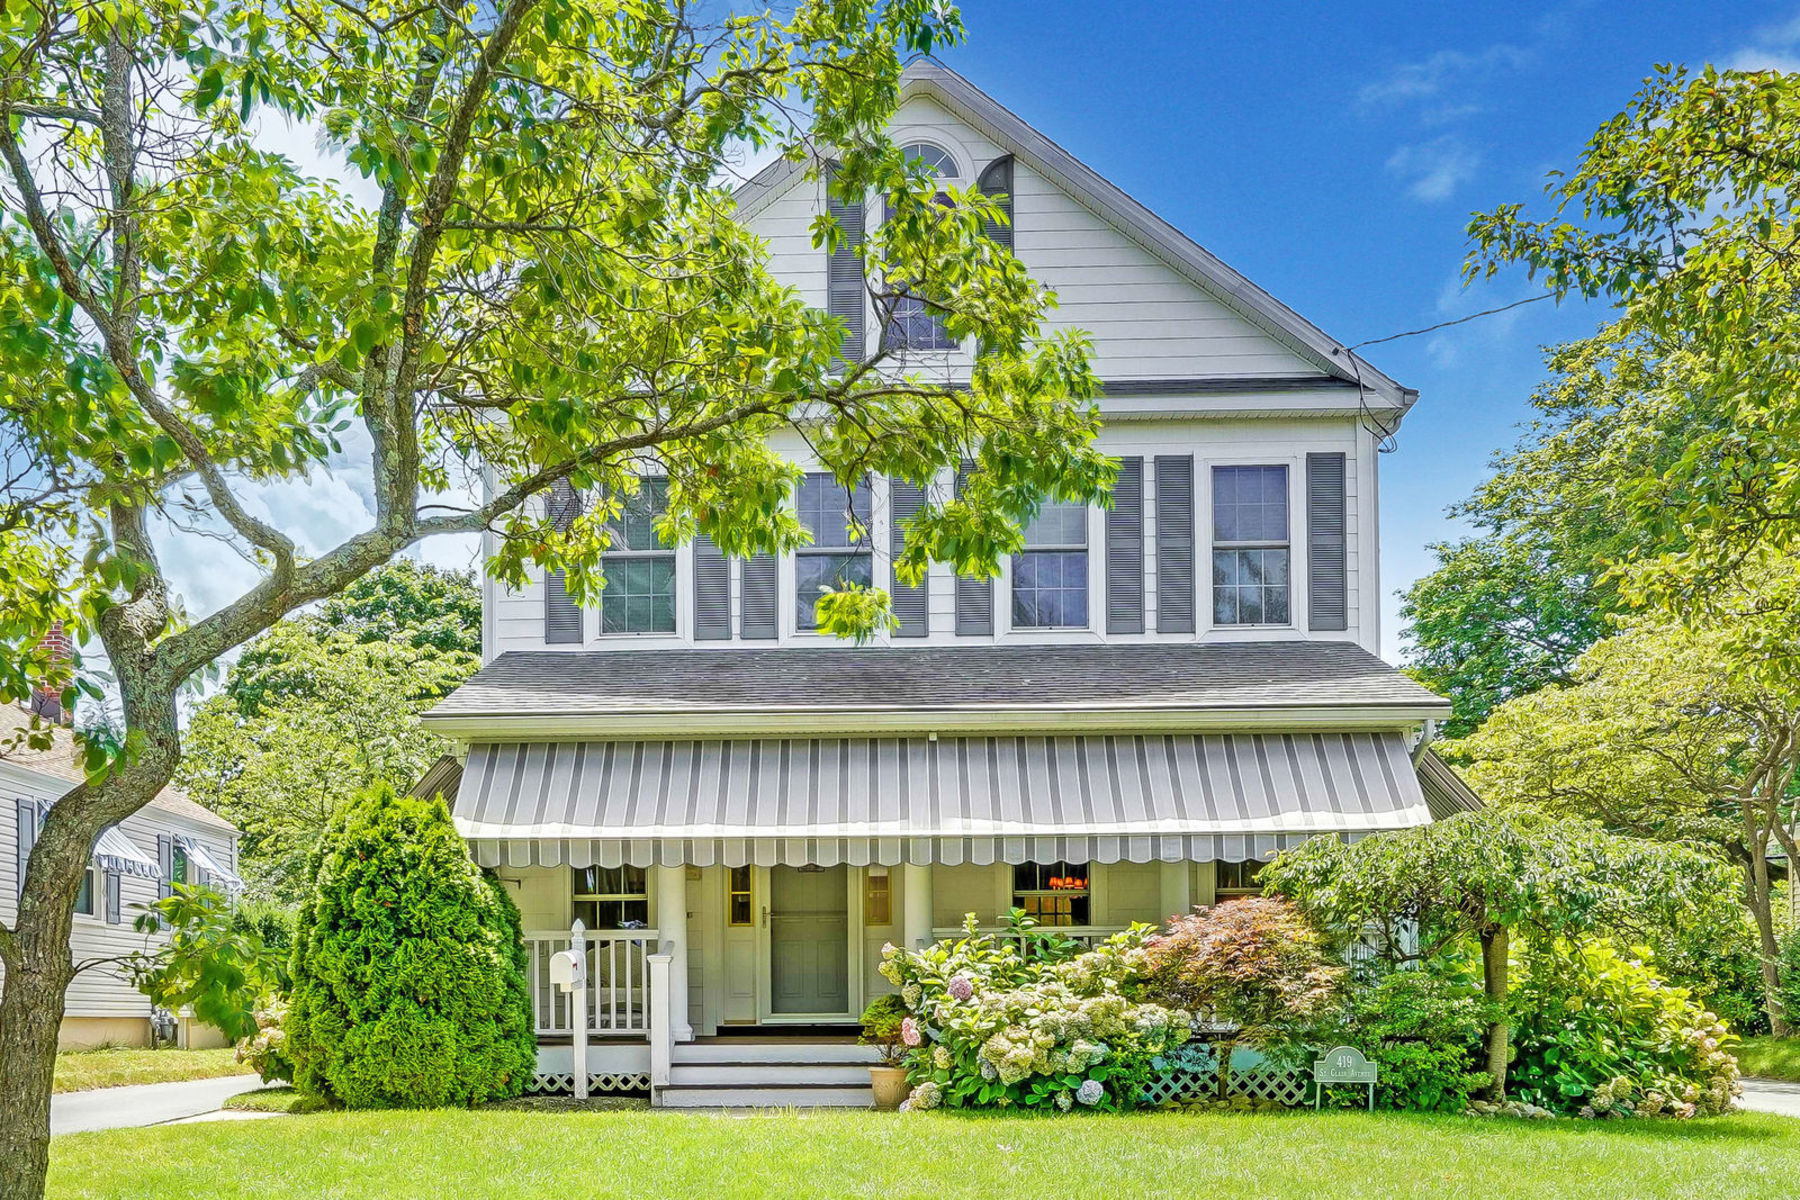 Single Family Home for Sale at Charming Spring Lake Victorian 419 Saint Clair Avenue, Spring Lake, New Jersey 07762 United States